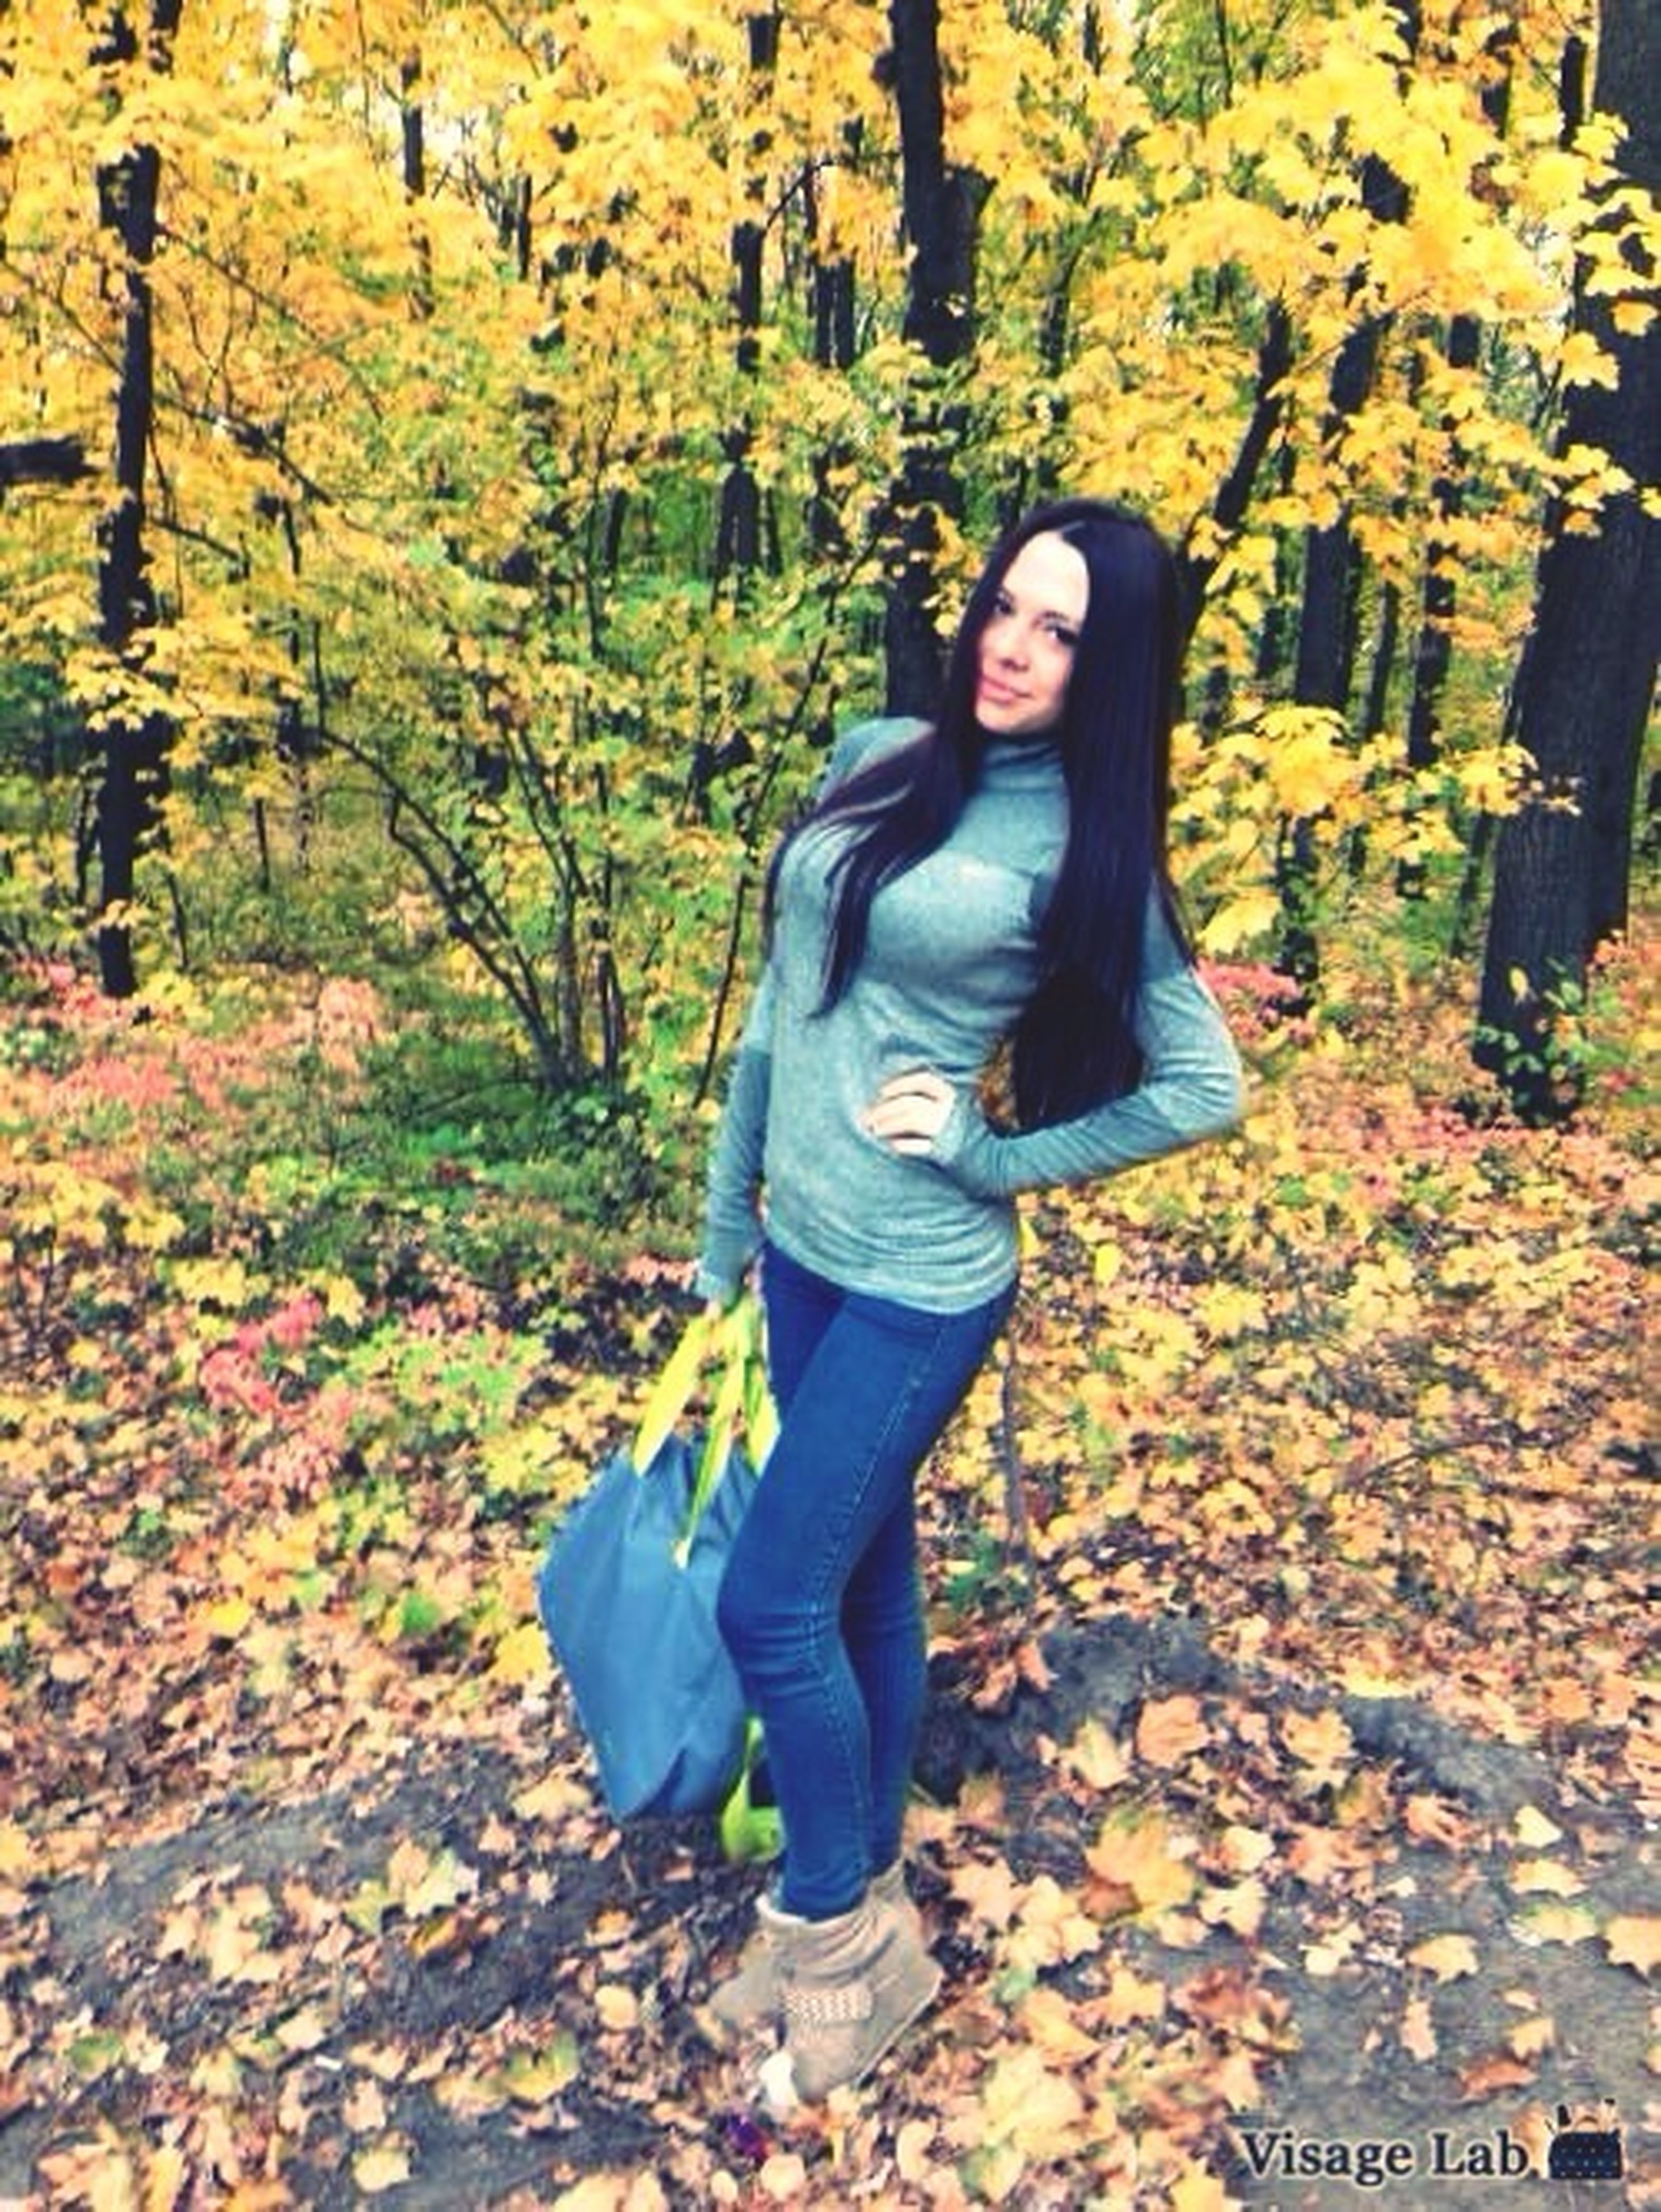 lifestyles, casual clothing, young adult, autumn, leisure activity, person, tree, leaf, full length, standing, change, young women, season, front view, looking at camera, portrait, sitting, three quarter length